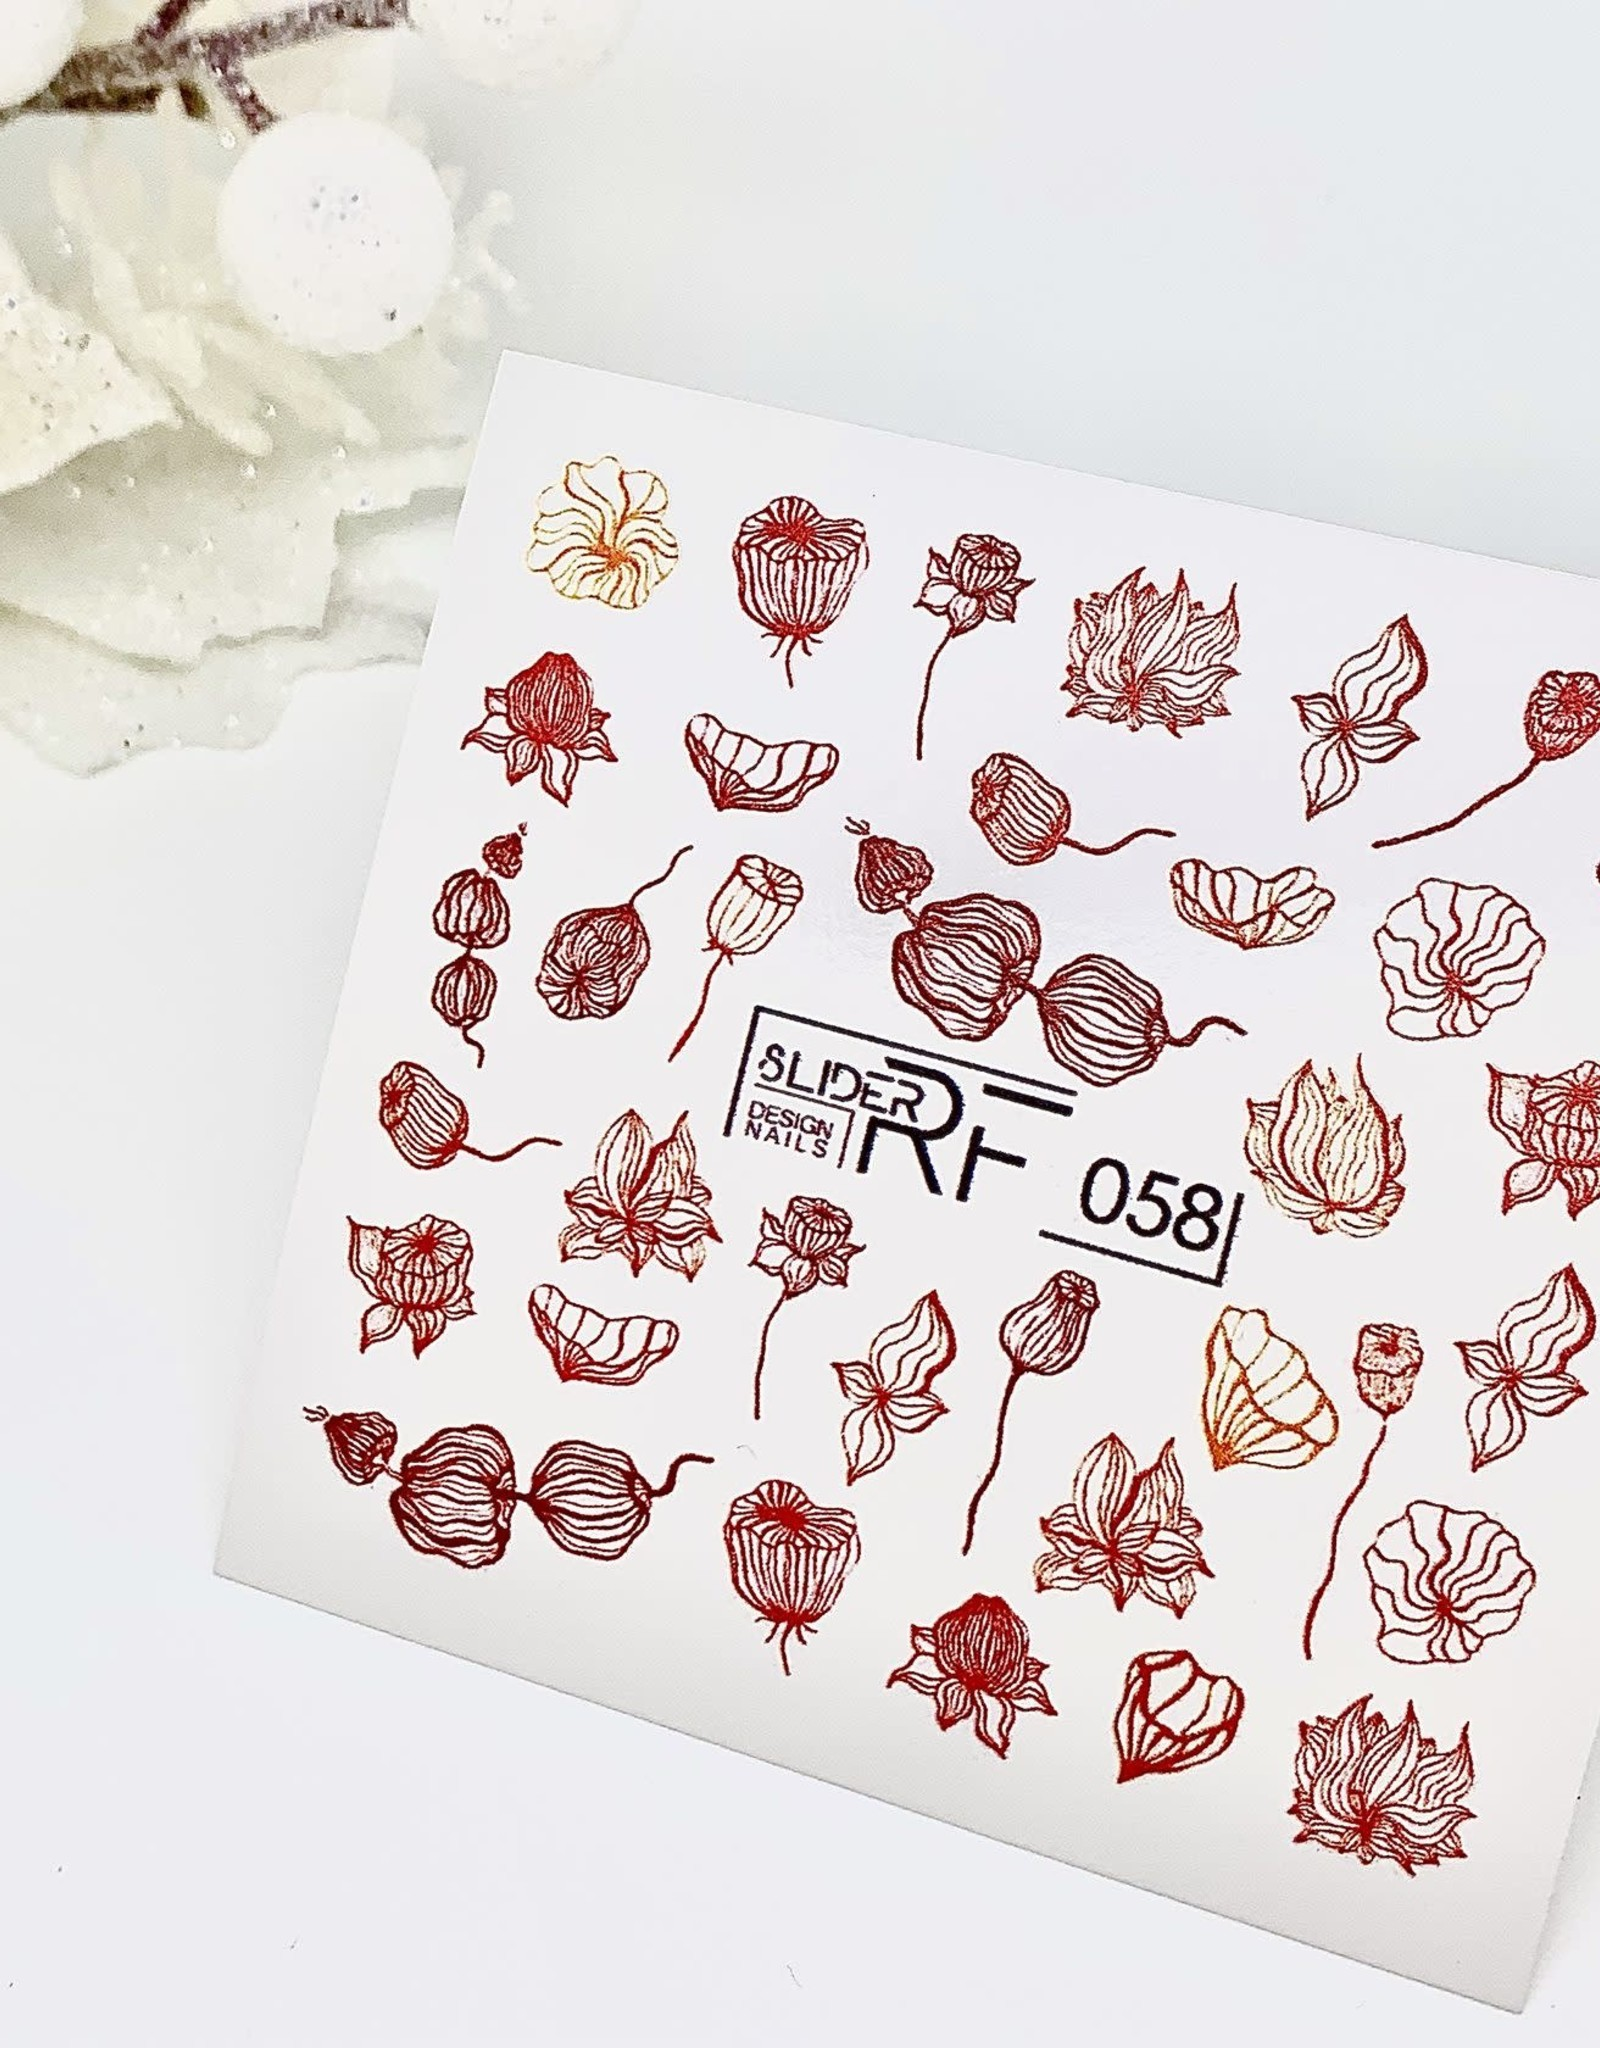 TS Water decal 058